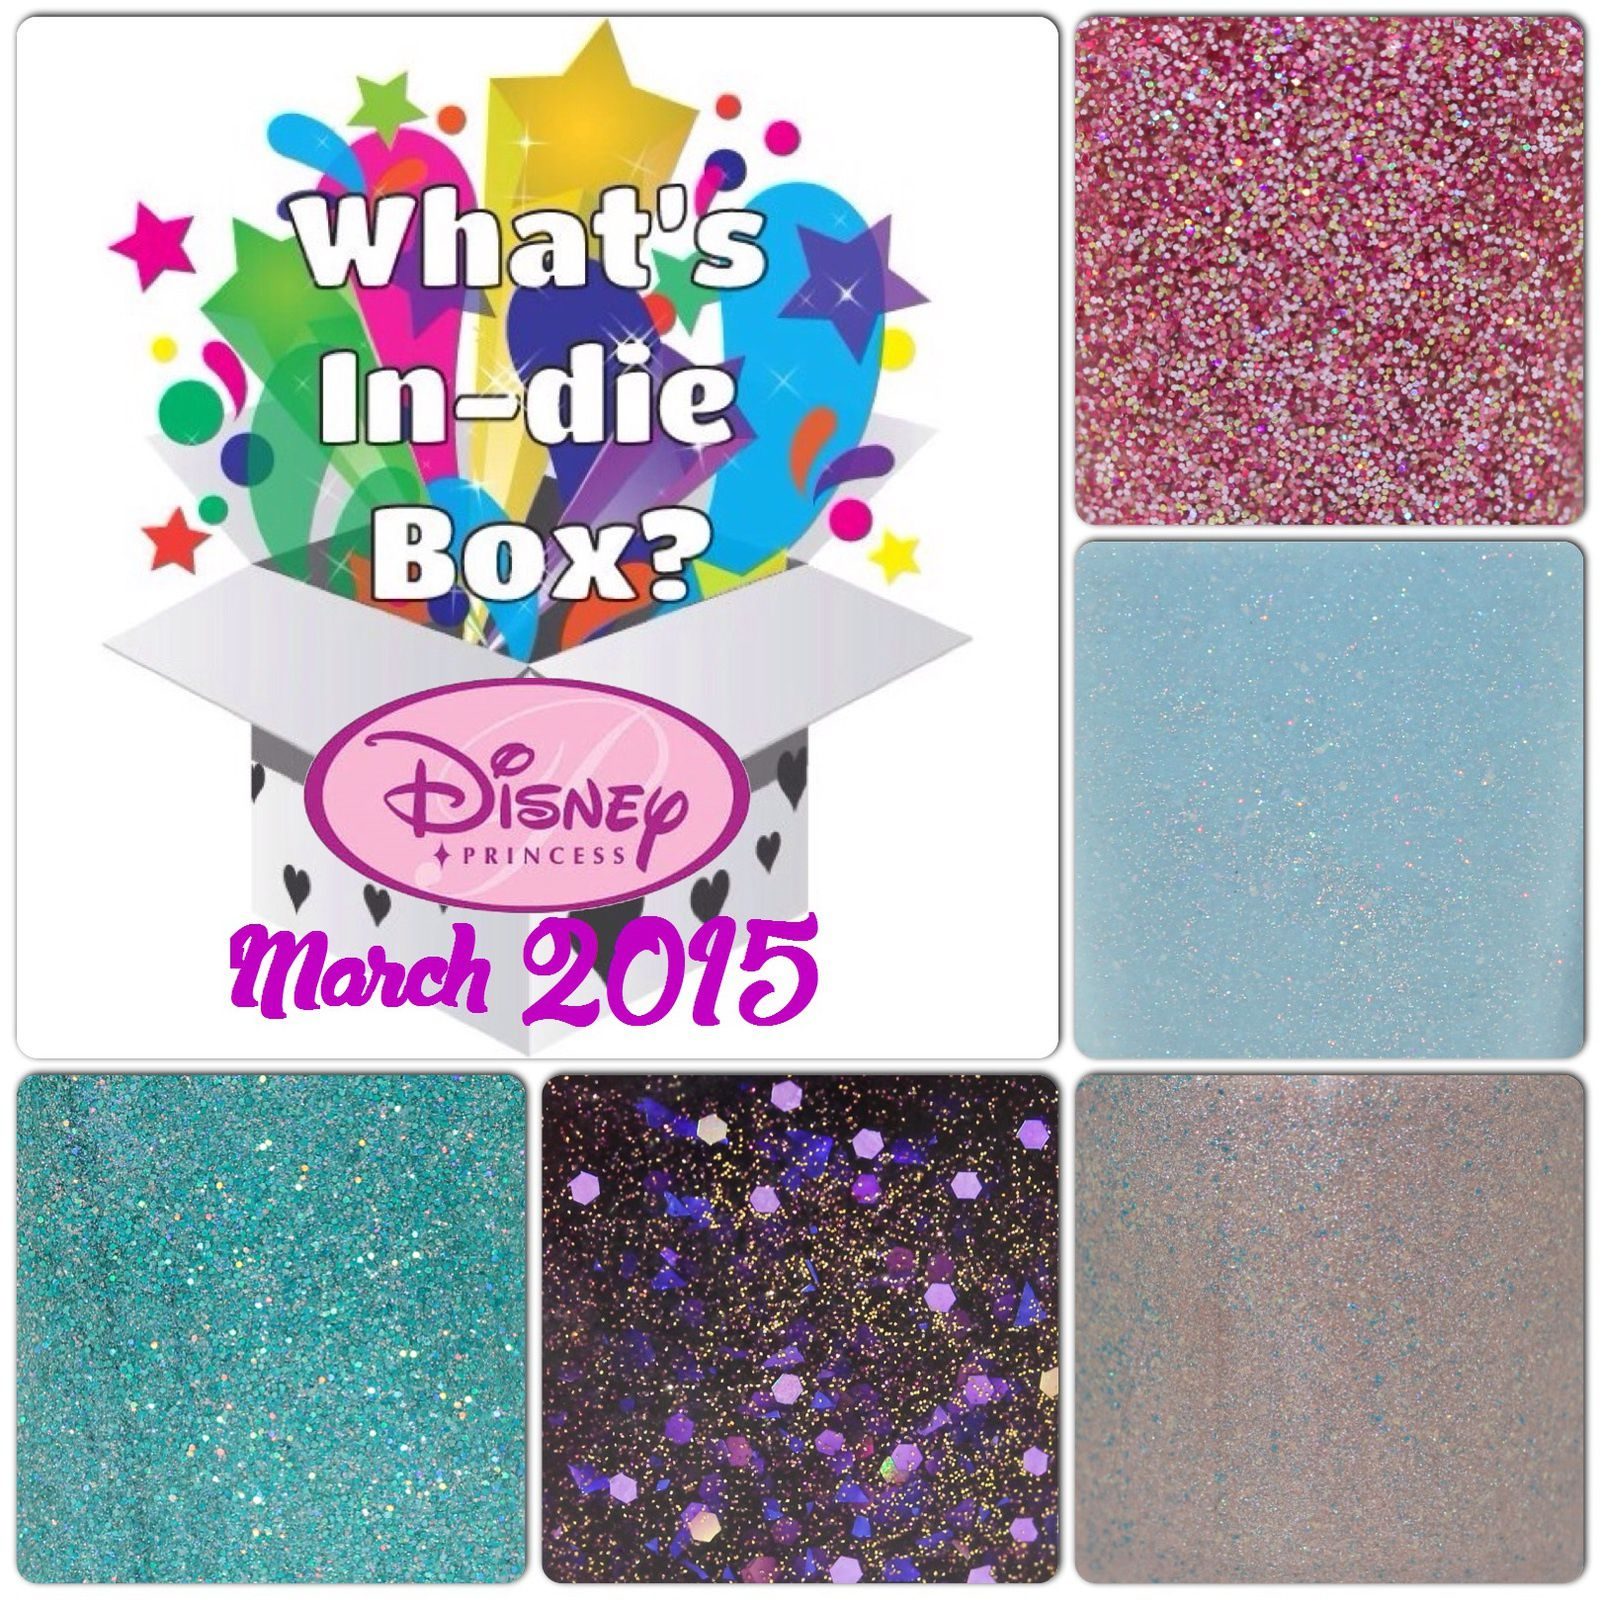 What's Indie Box - March 2015 - Disney Princess